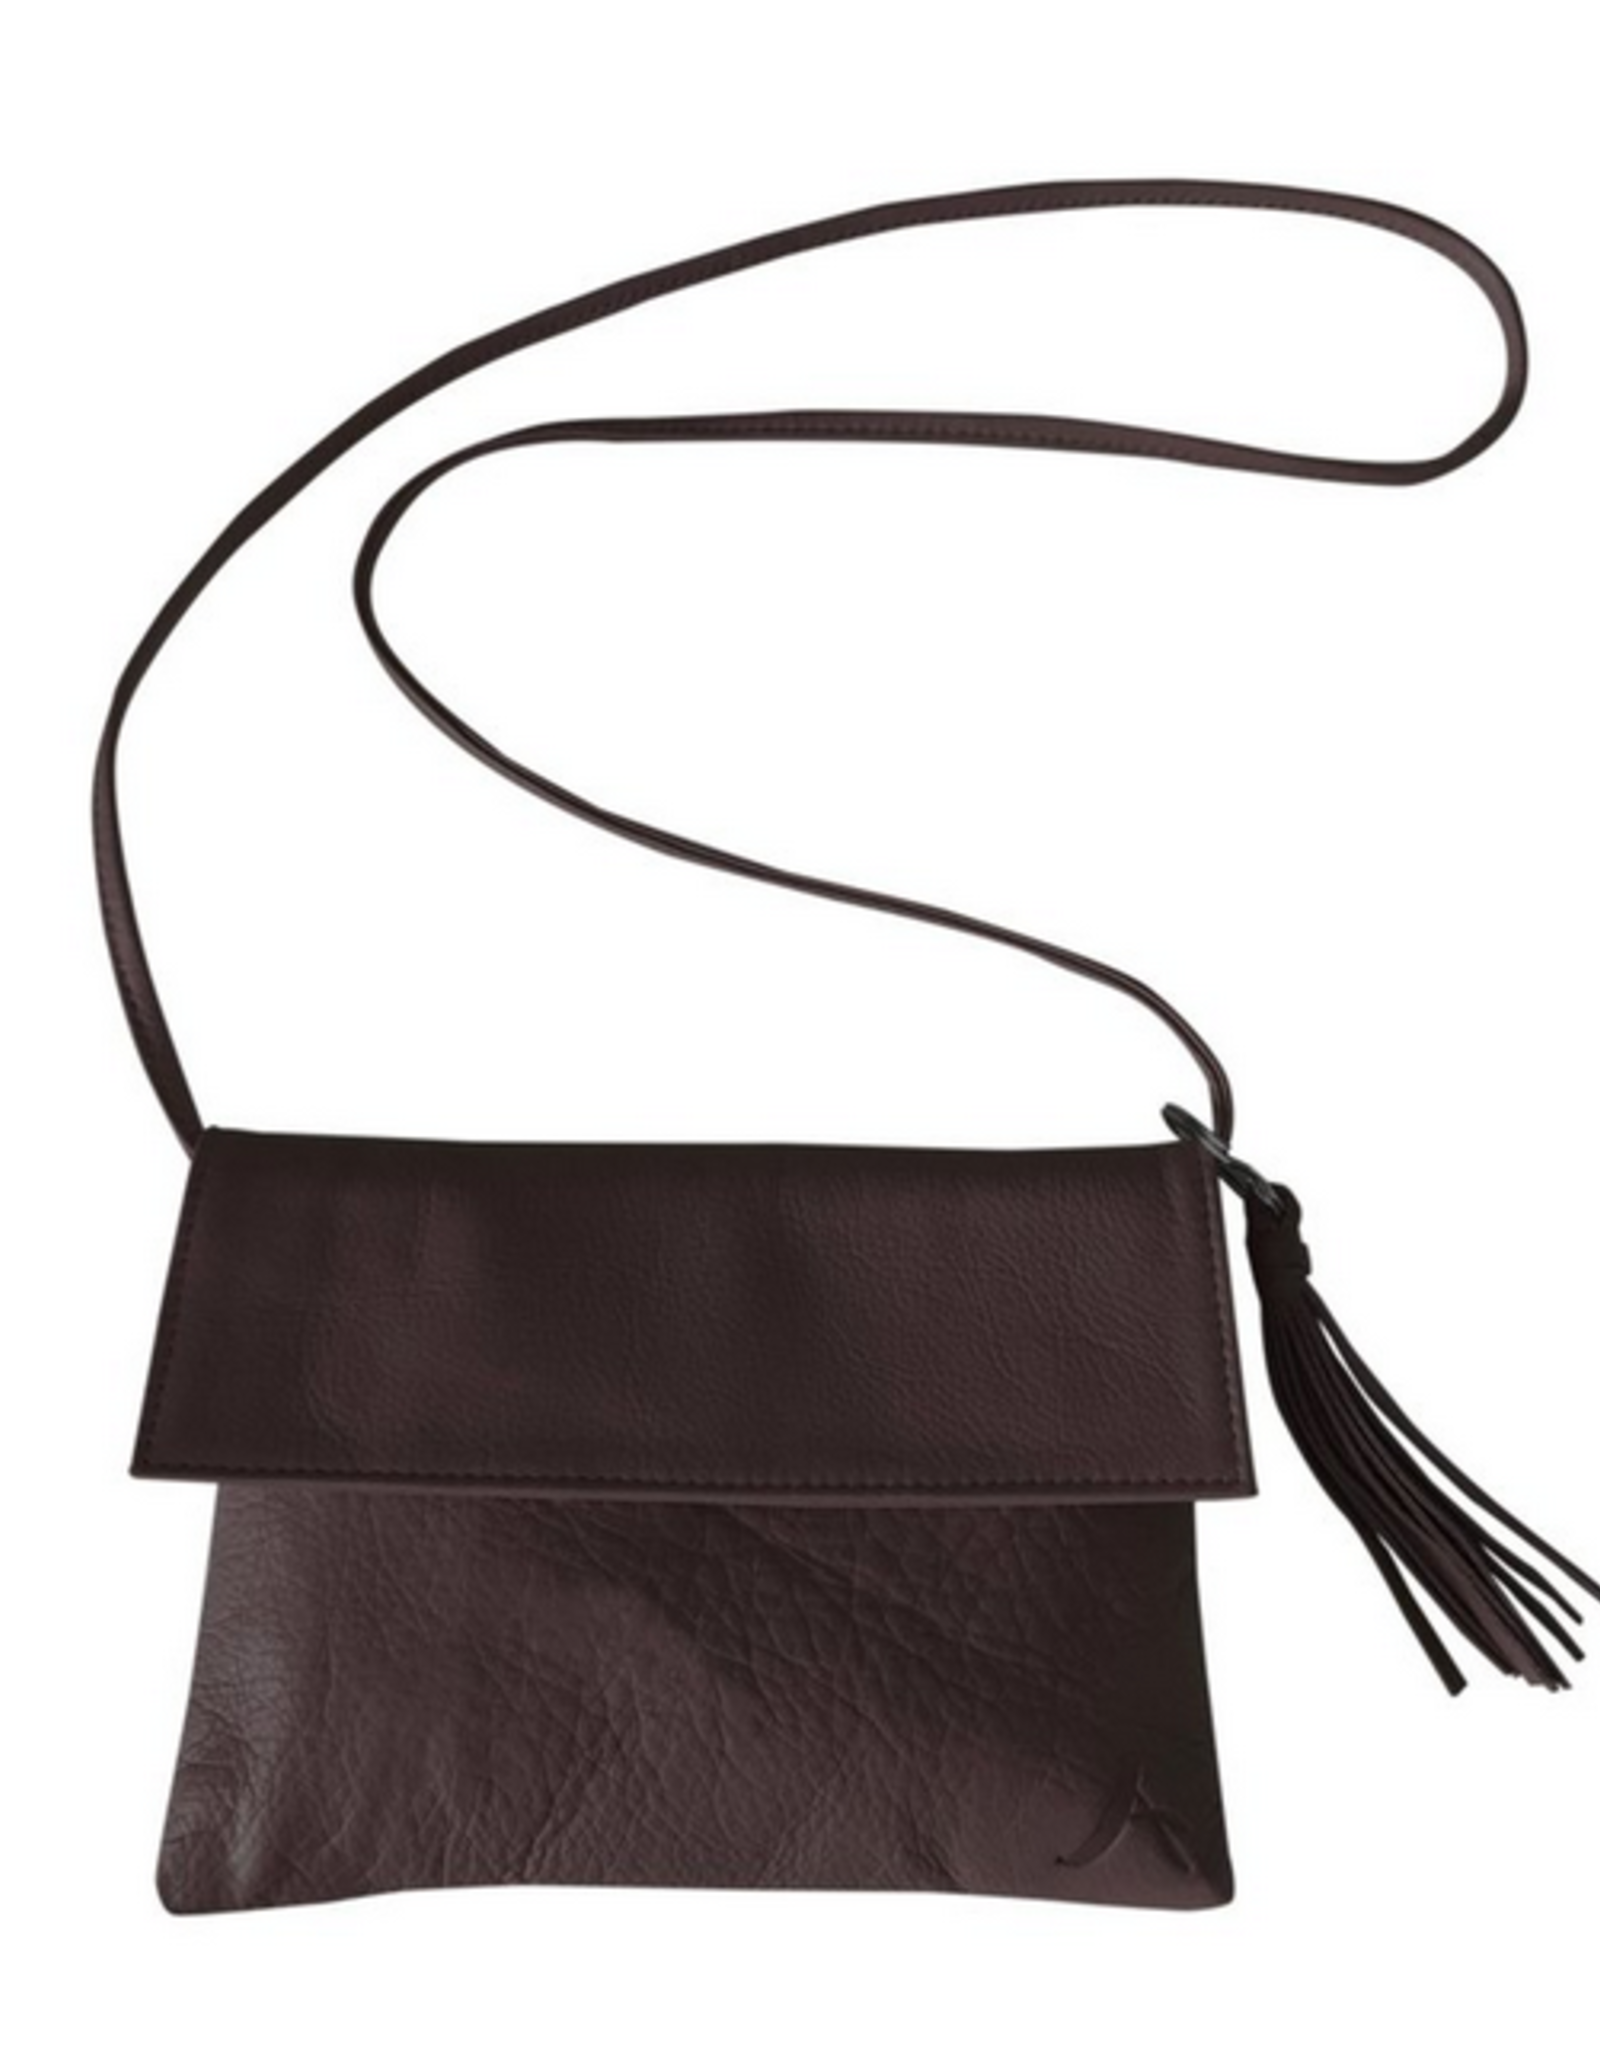 A Handmade Designs SMALL CROSSBODY Bag